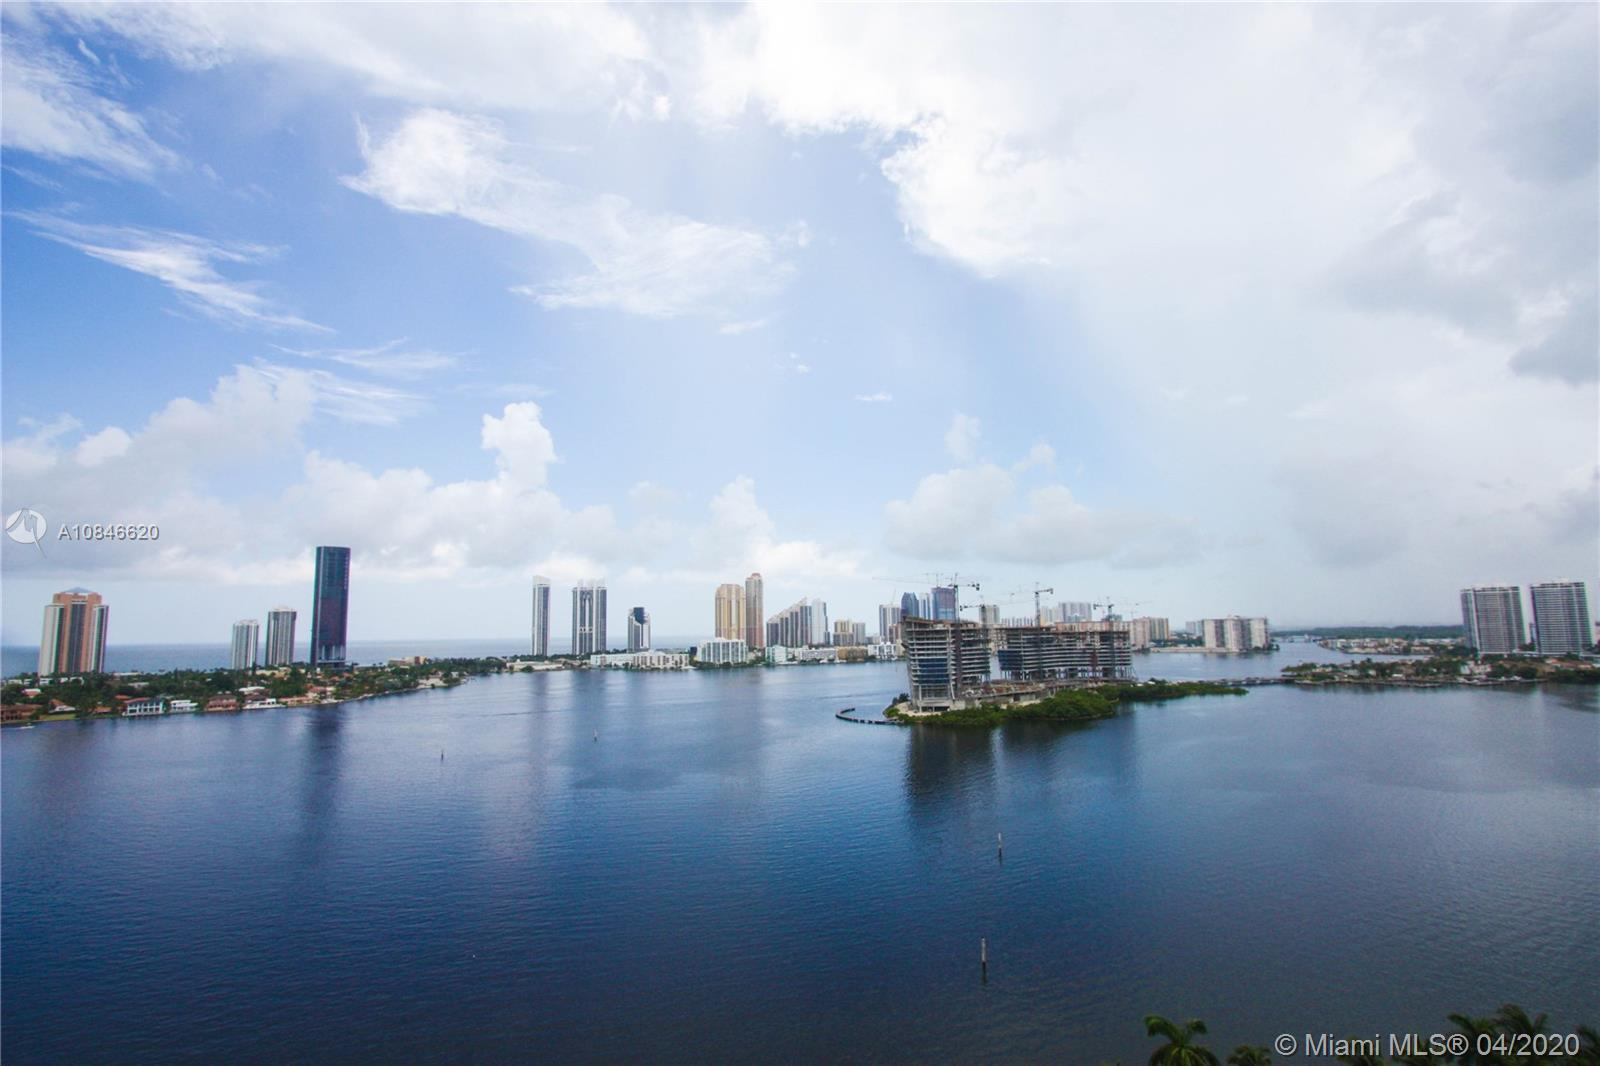 GORGEOUS UPPER PENTHOUSE (20th FLOOR) IN AVENTURA, COMPLETELY RENOVATED FOR YOUR PICKIEST CLIENT. SPACIOUS 3 BEDROOMS, 3.5 BATHS. TOP OF THE LINE FINISHES, GRANITE COUNTERTOPS, ITALIAN KITCHEN WITH A SEPARATE DINING AREA. BREATHTAKING OCEAN, BAY AND CITY VIEW. LOCATED AT THE HEART OF AVENTURA, CLOSE TO FOUNDERS PARK,AVENTURA MALL, RESTAURANTS, A+ SCHOOLS, SYNAGOGUE ,BEACH. GREAT CONDO-HAS A PRIVATE MARINA, TENNIS COURTS, POOLS, GYM, SAUNA, LIBRARY, PLAYROOM AND MORE.